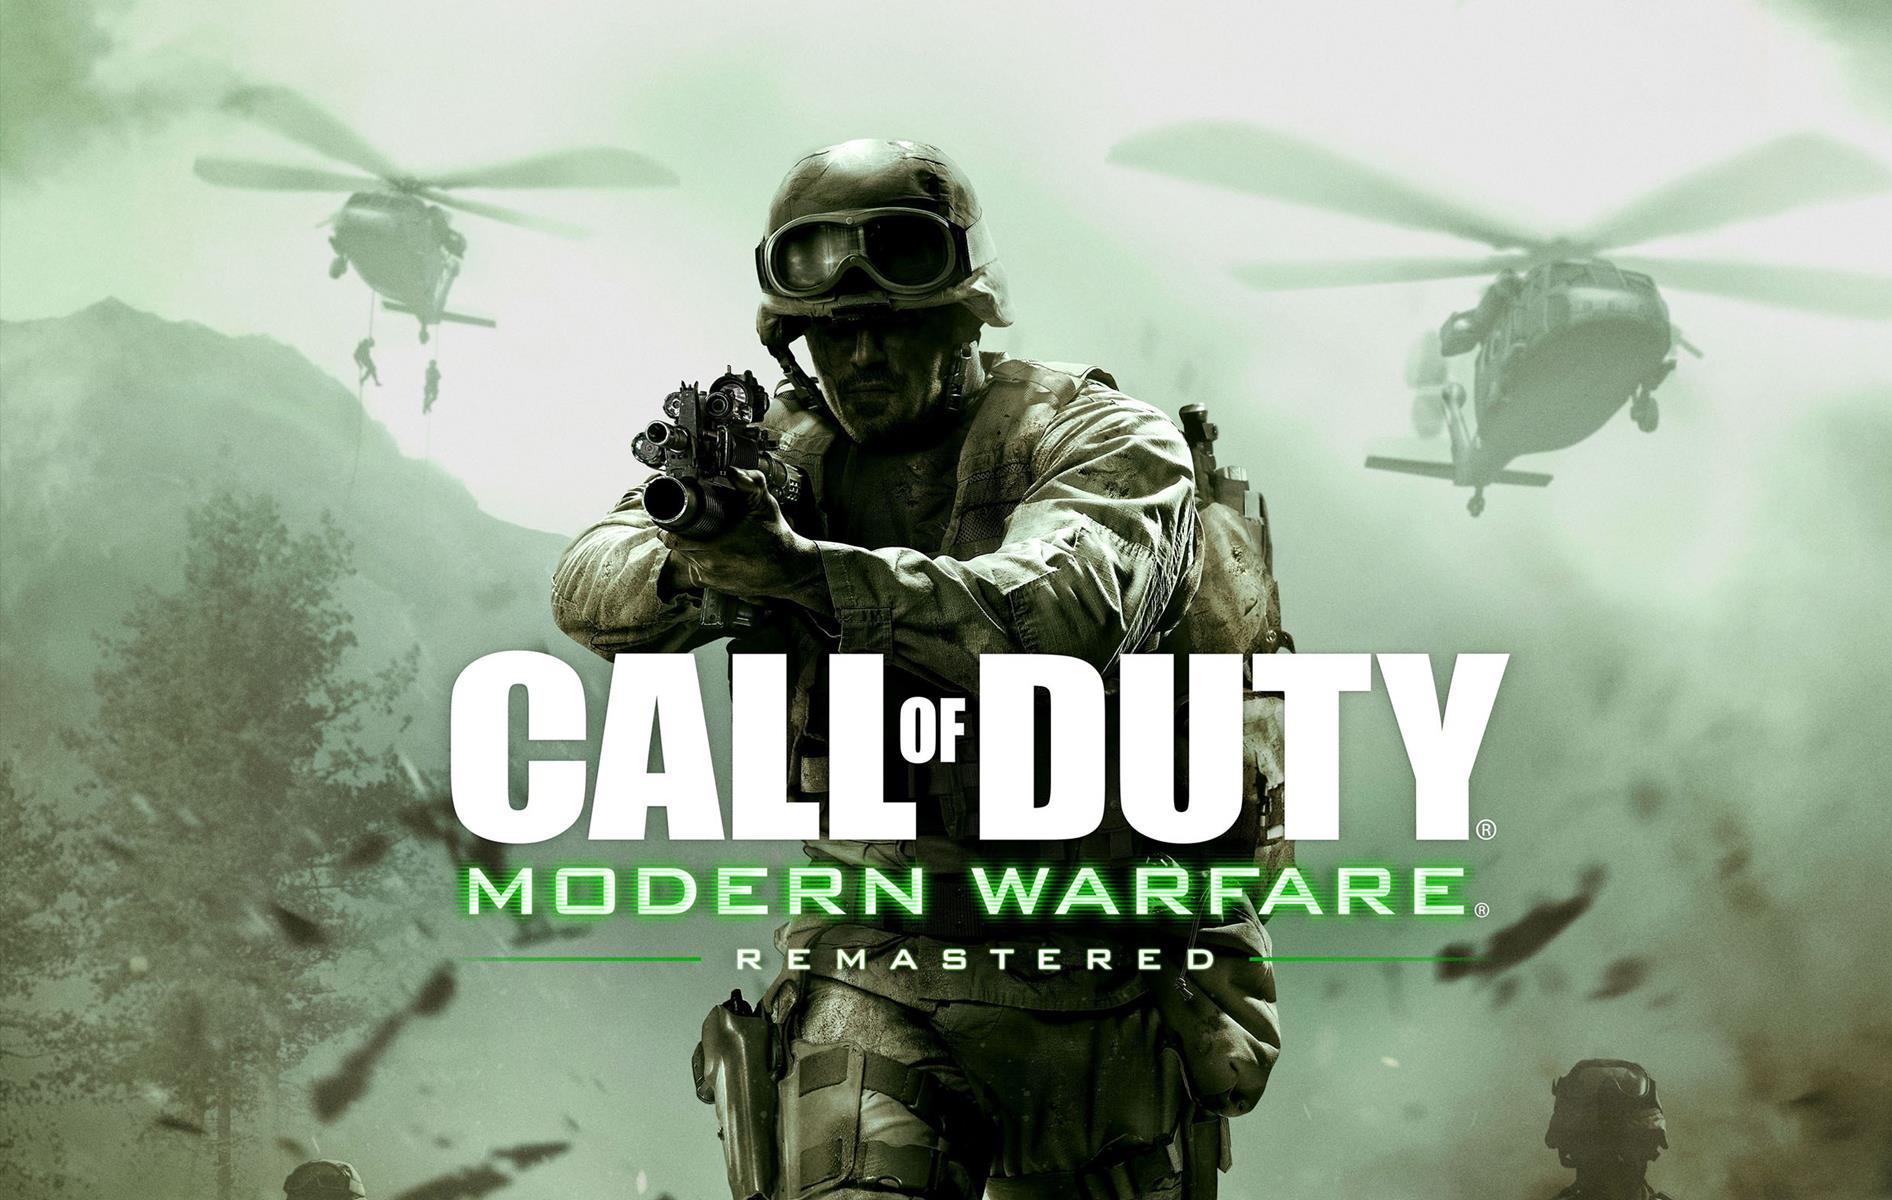 call-of-duty-modern-warfare-remastered-cover-header-1-copy_uahe-1920